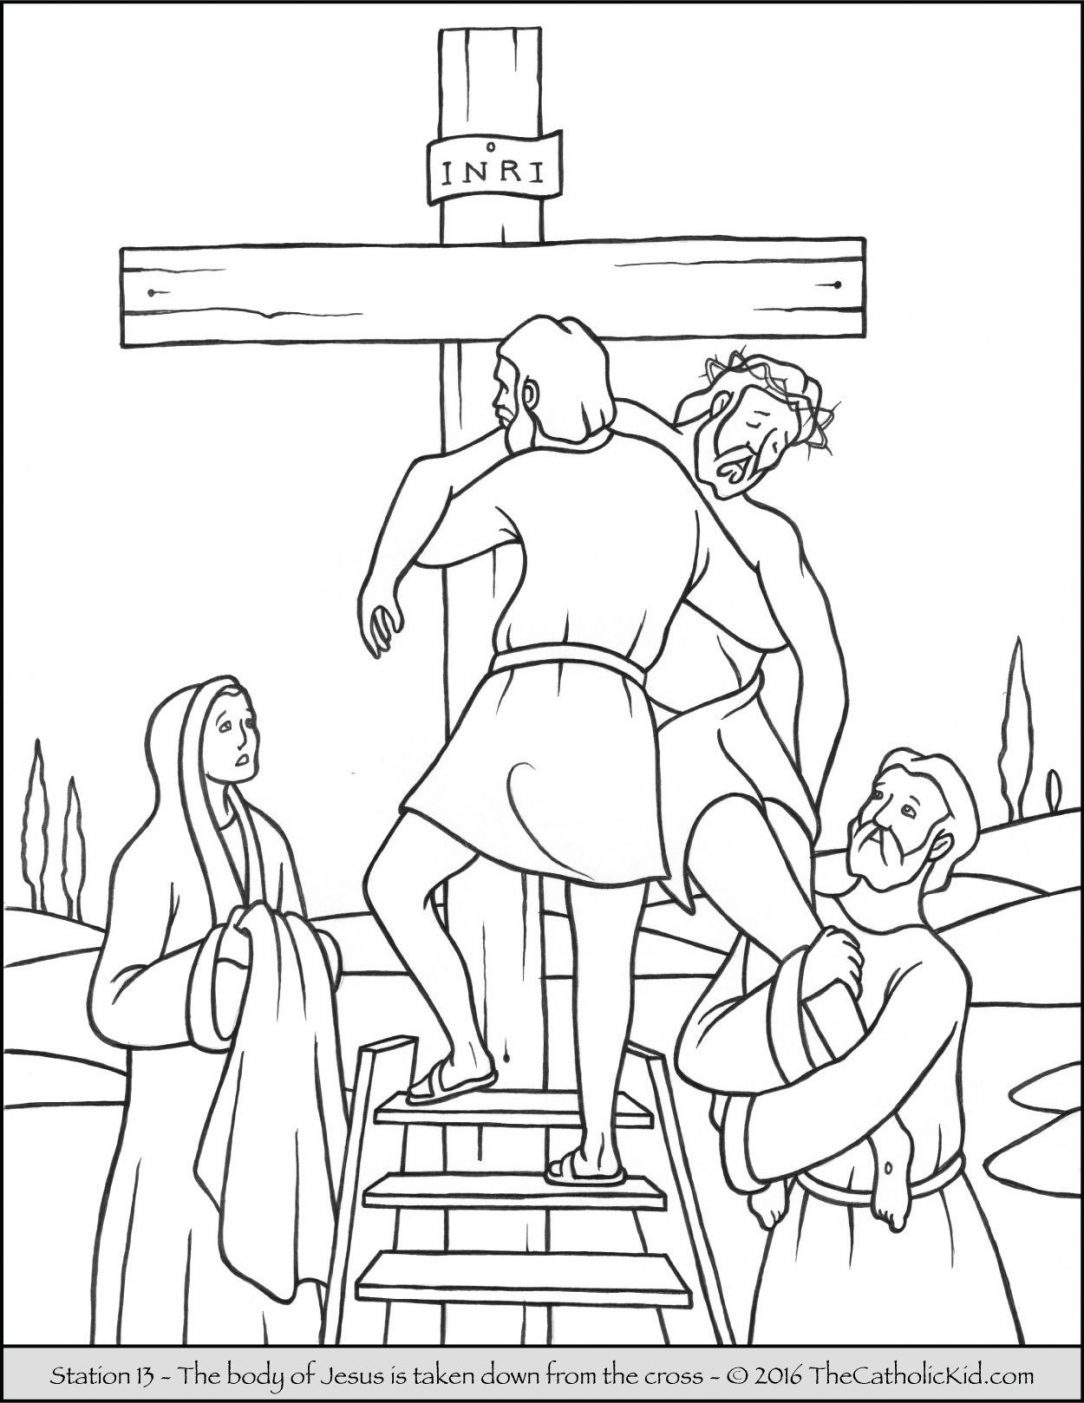 The Good Shepherd Coloring Page Coloring Pages Of Jesus A Child The Good Shepherd Boy Miracles